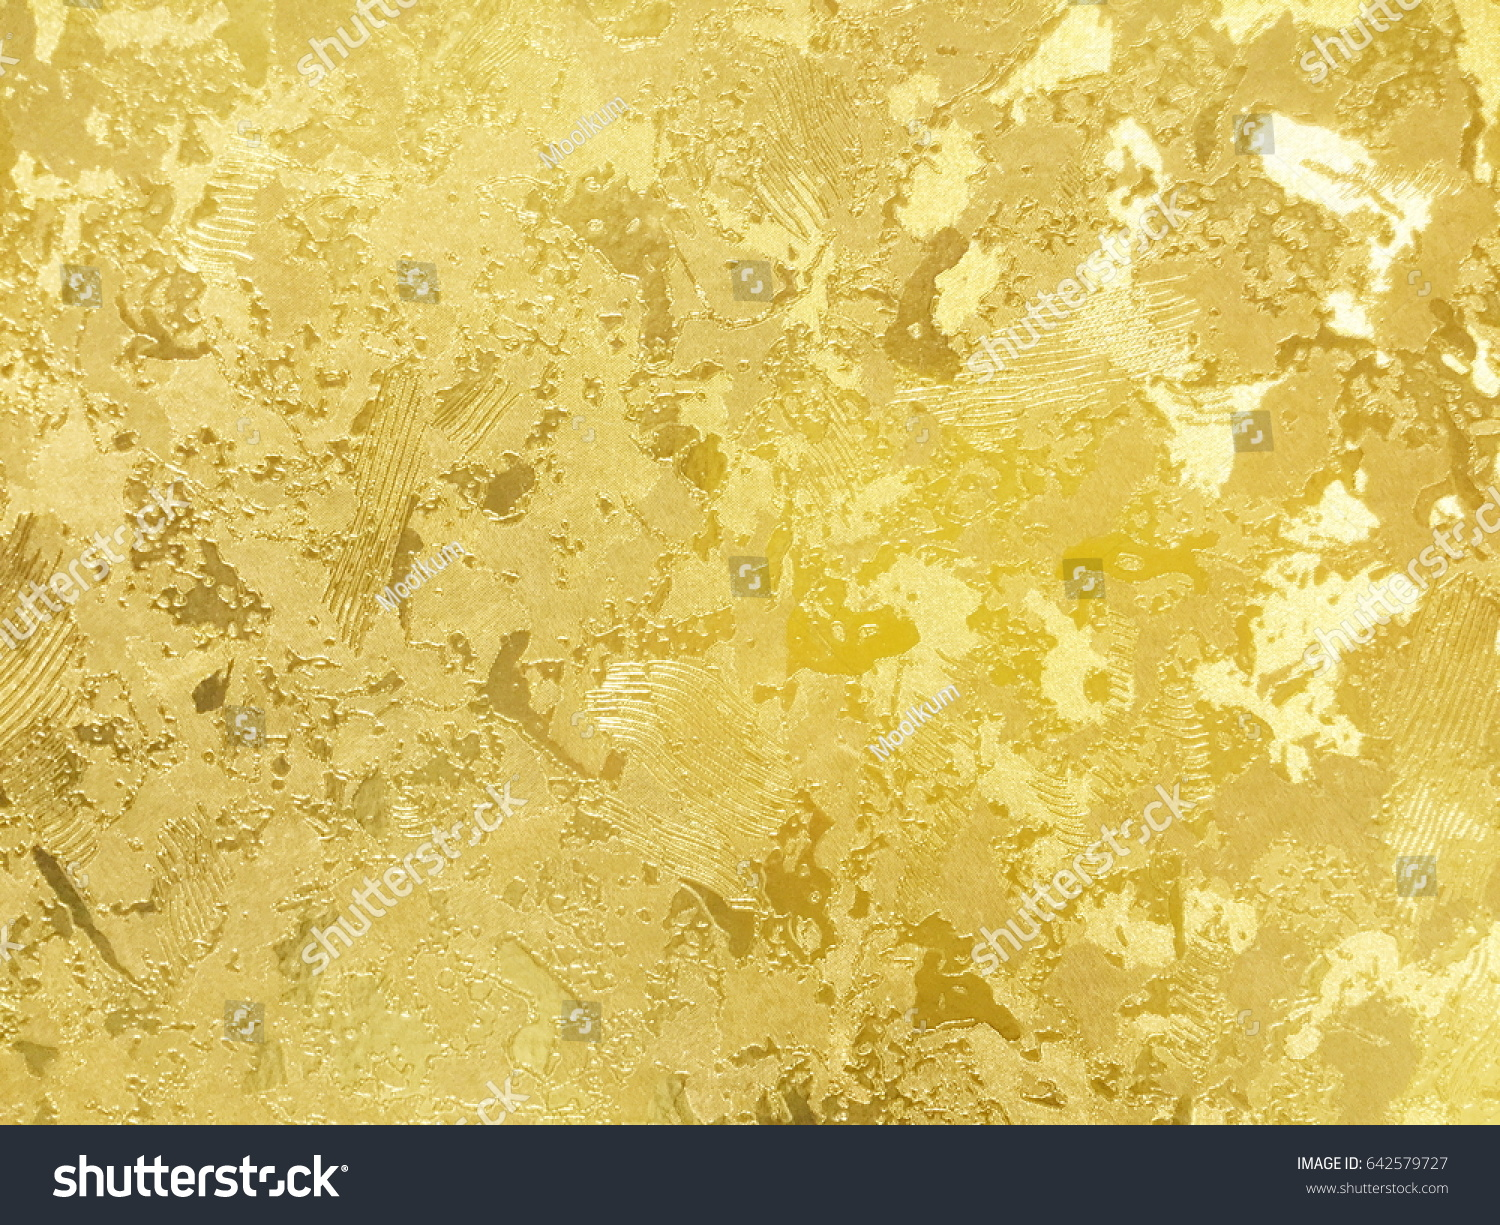 Abstract Gold Color Painted On Grunge Stock Photo (Edit Now ...